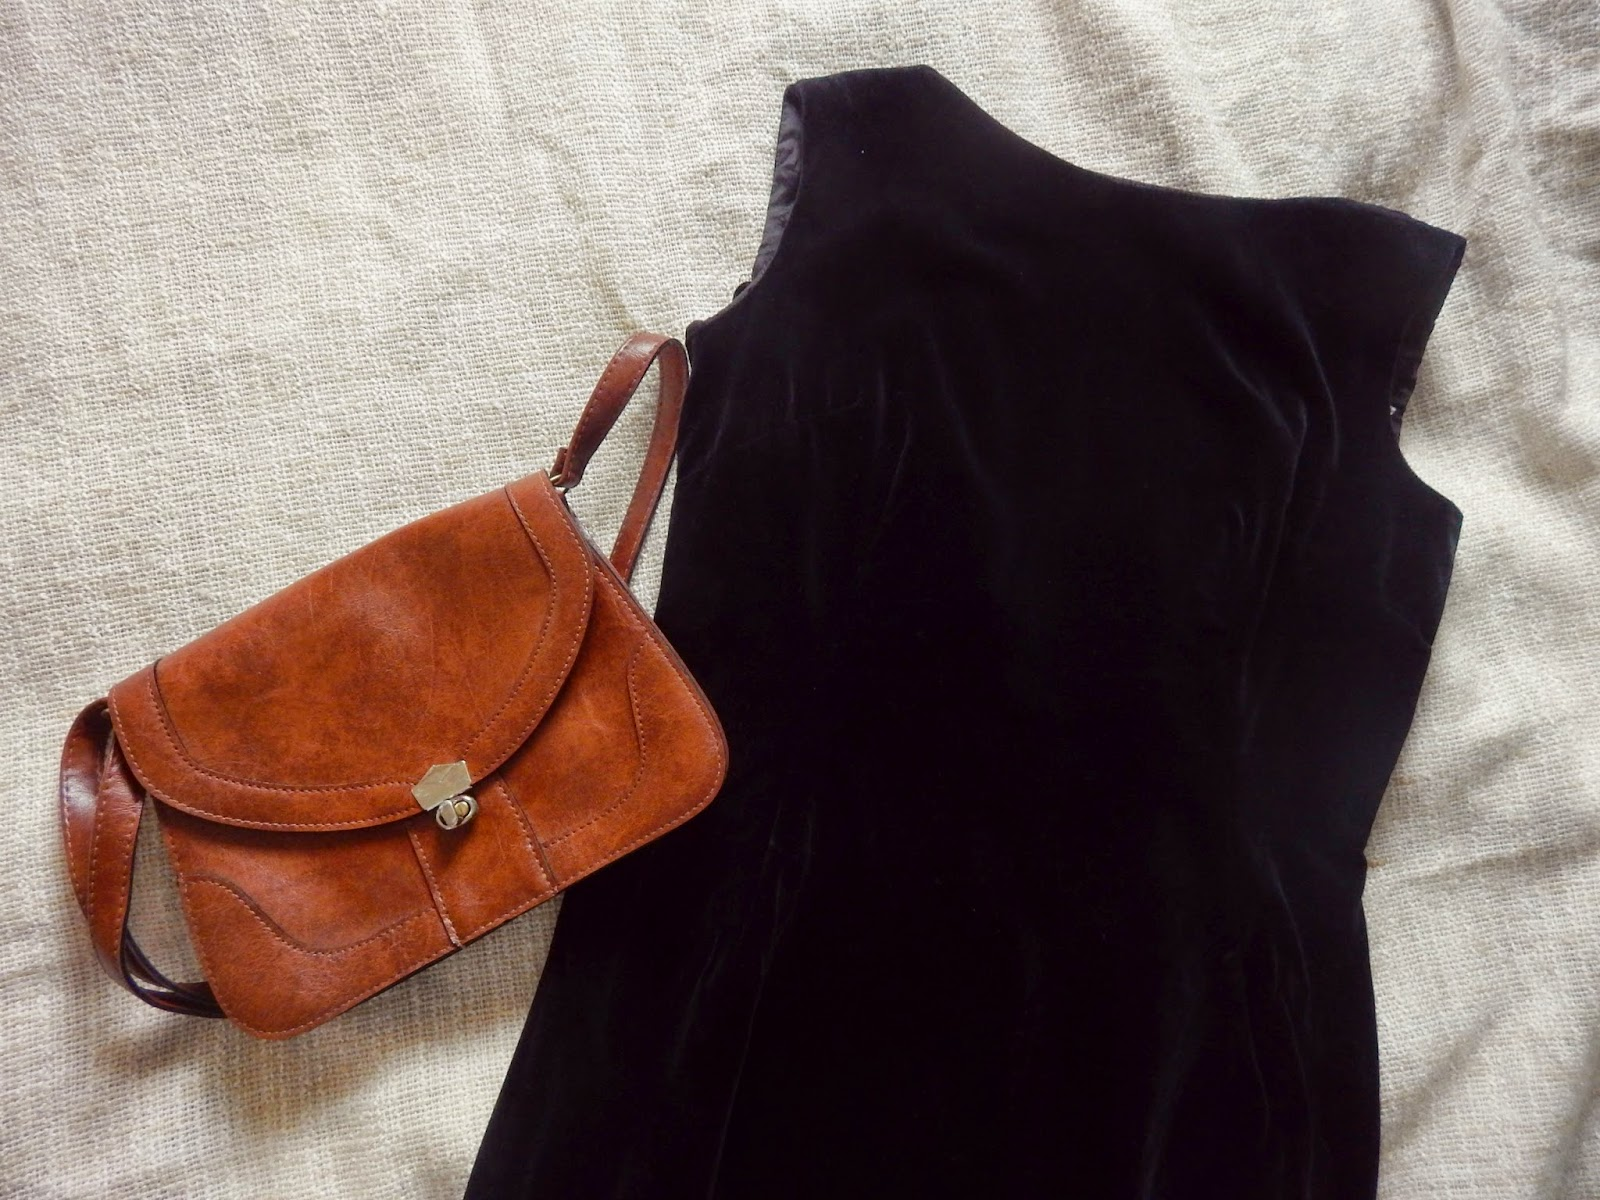 Pinafore and saddlebag